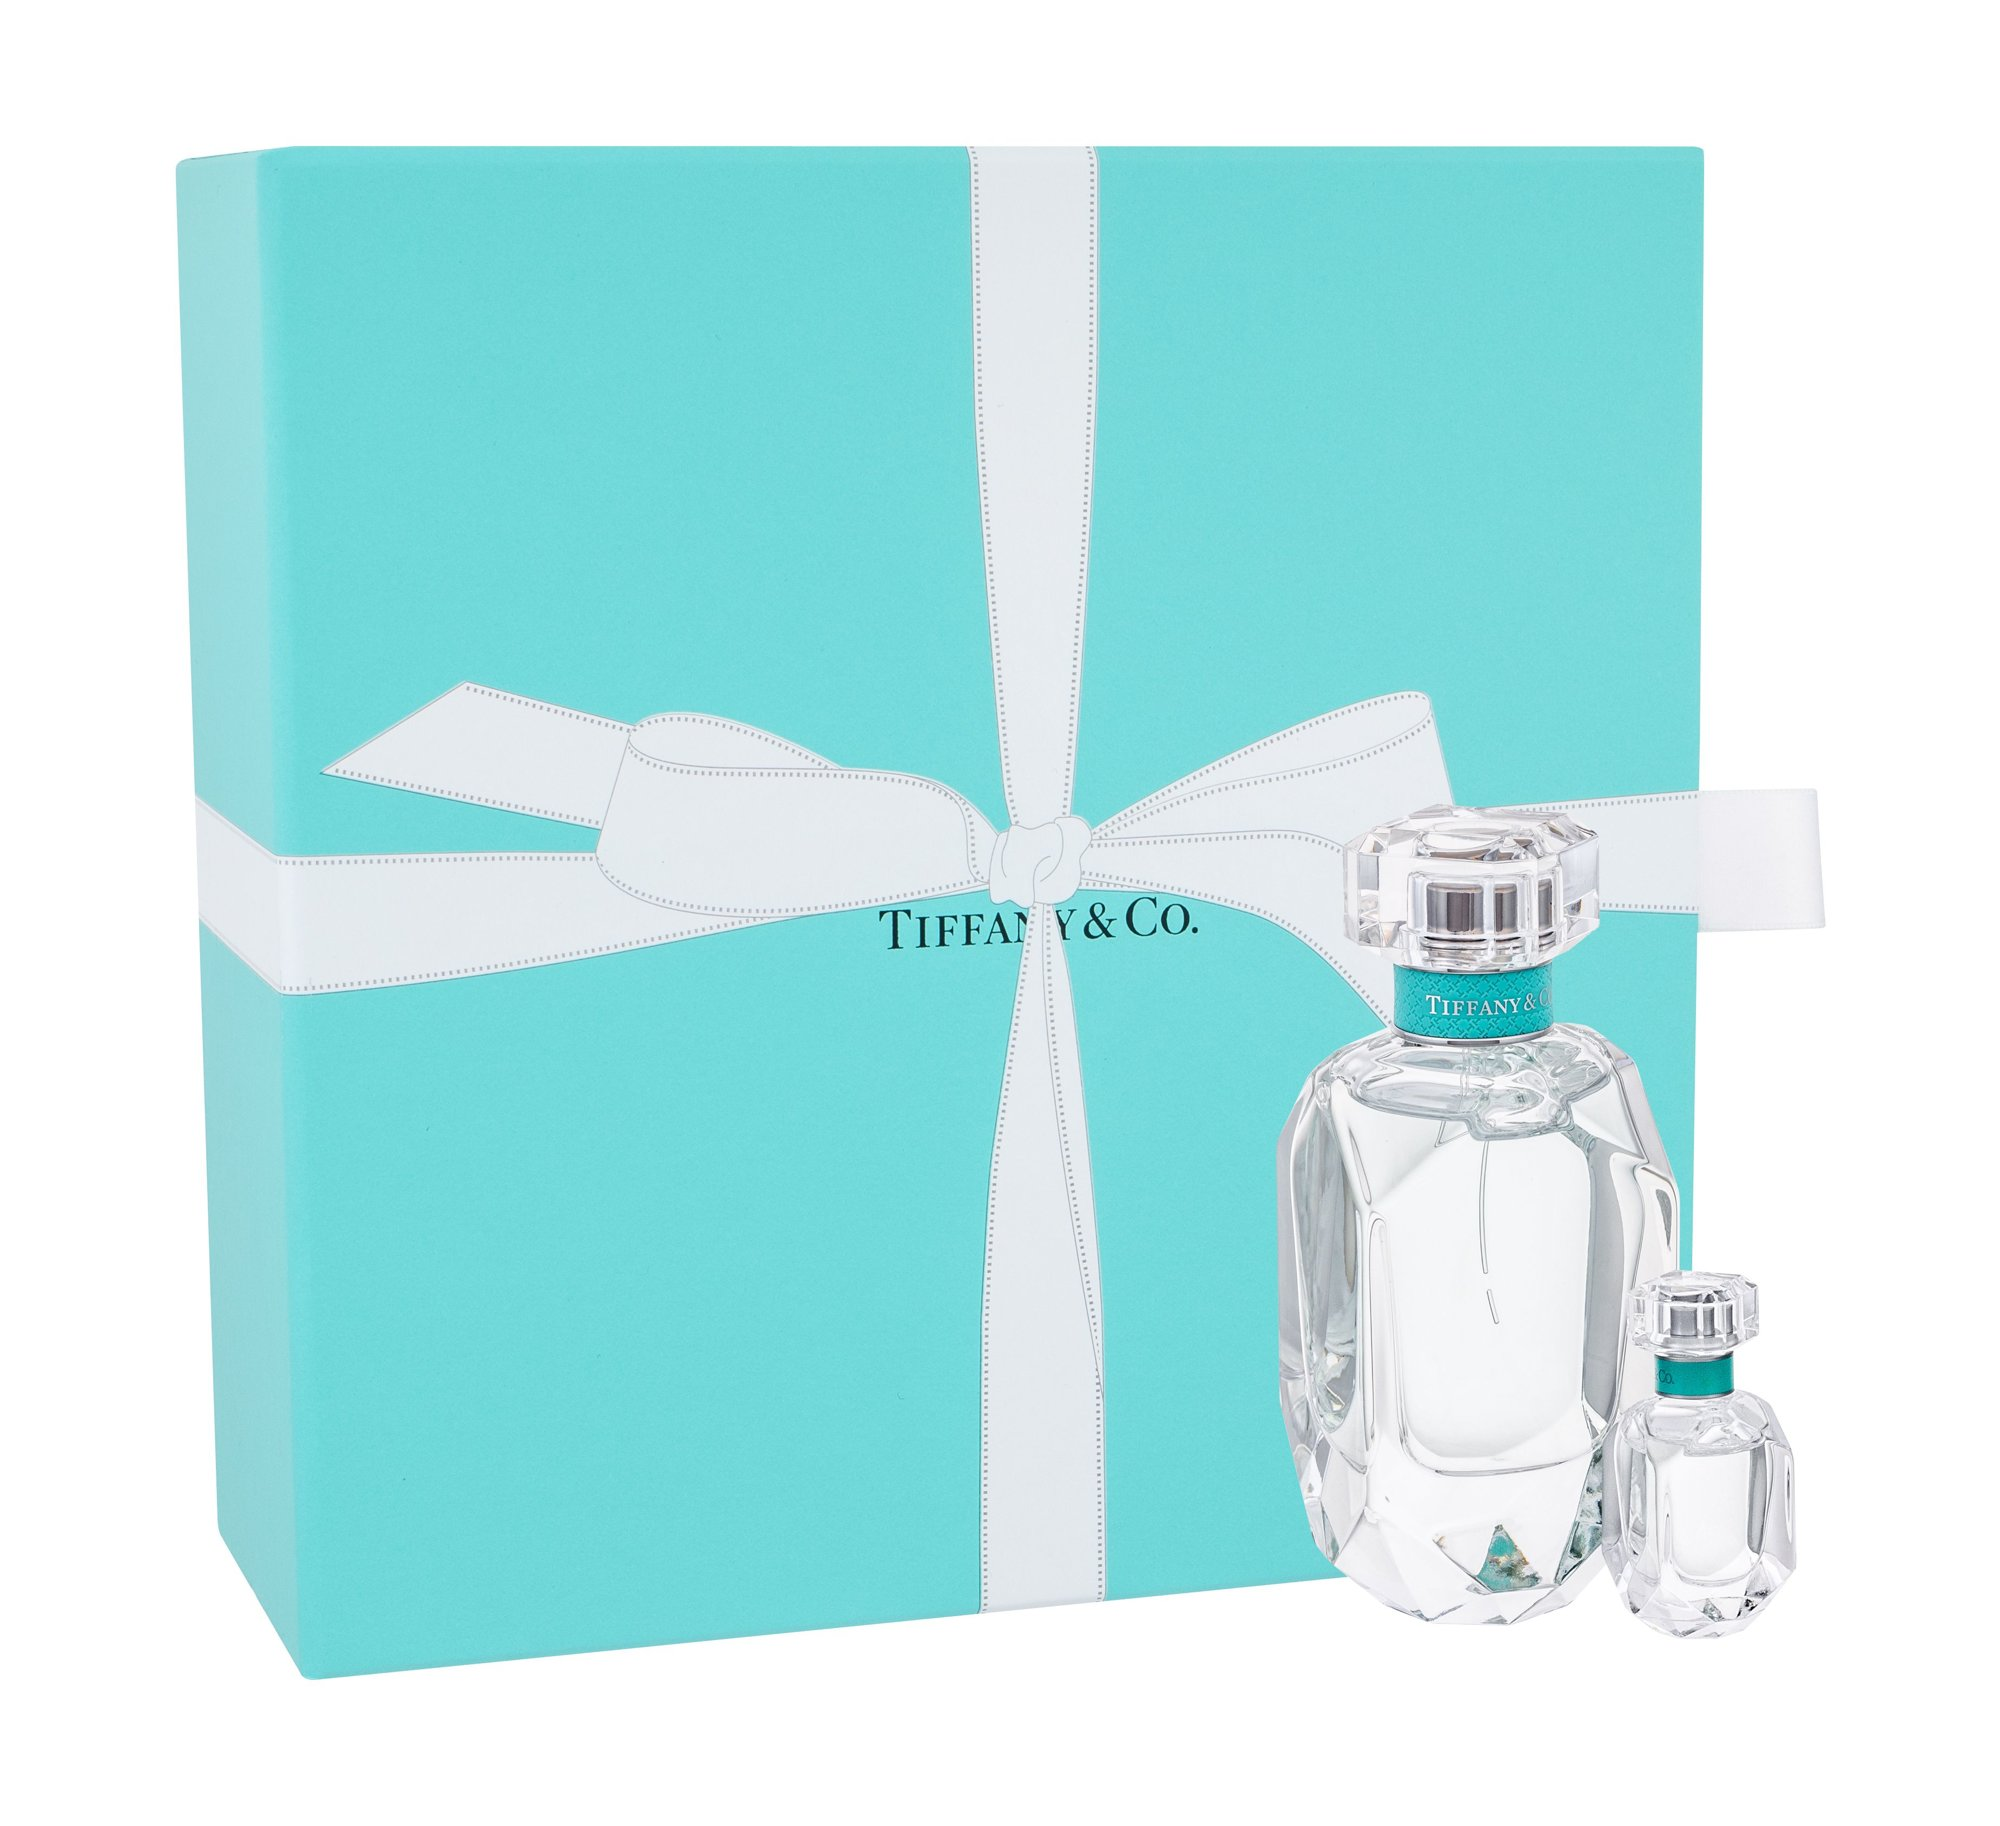 Tiffany & Co. Tiffany & Co. EDP 75ml